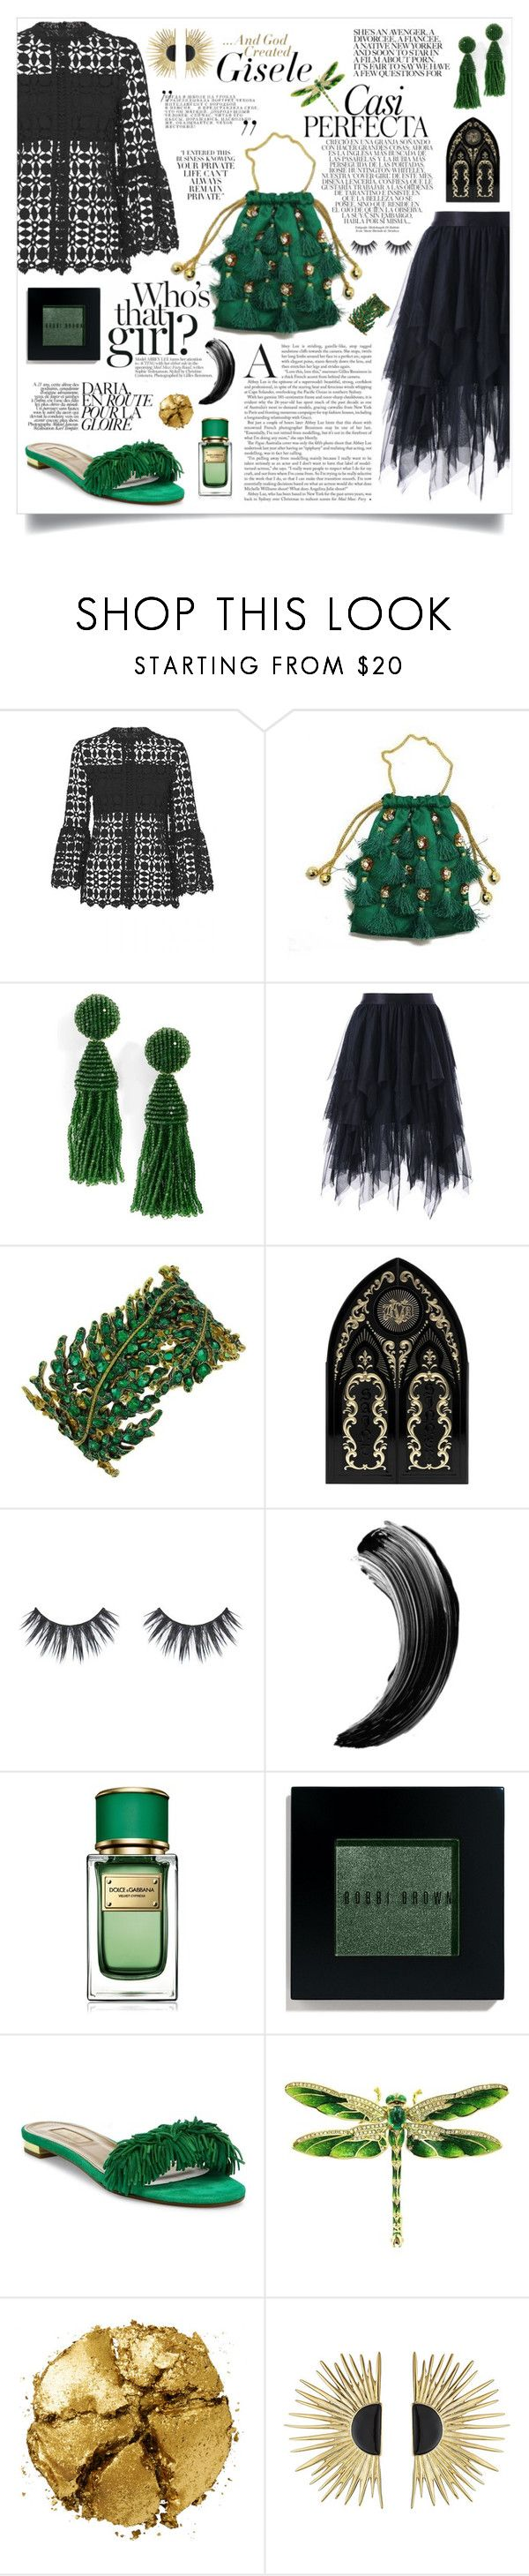 """That touch of Green"" by jalouze ❤ liked on Polyvore featuring Oscar de la Renta, Whiteley, Kat Von D, Dolce&Gabbana, Bobbi Brown Cosmetics, Aquazzura, Pat McGrath and Aurélie Bidermann"